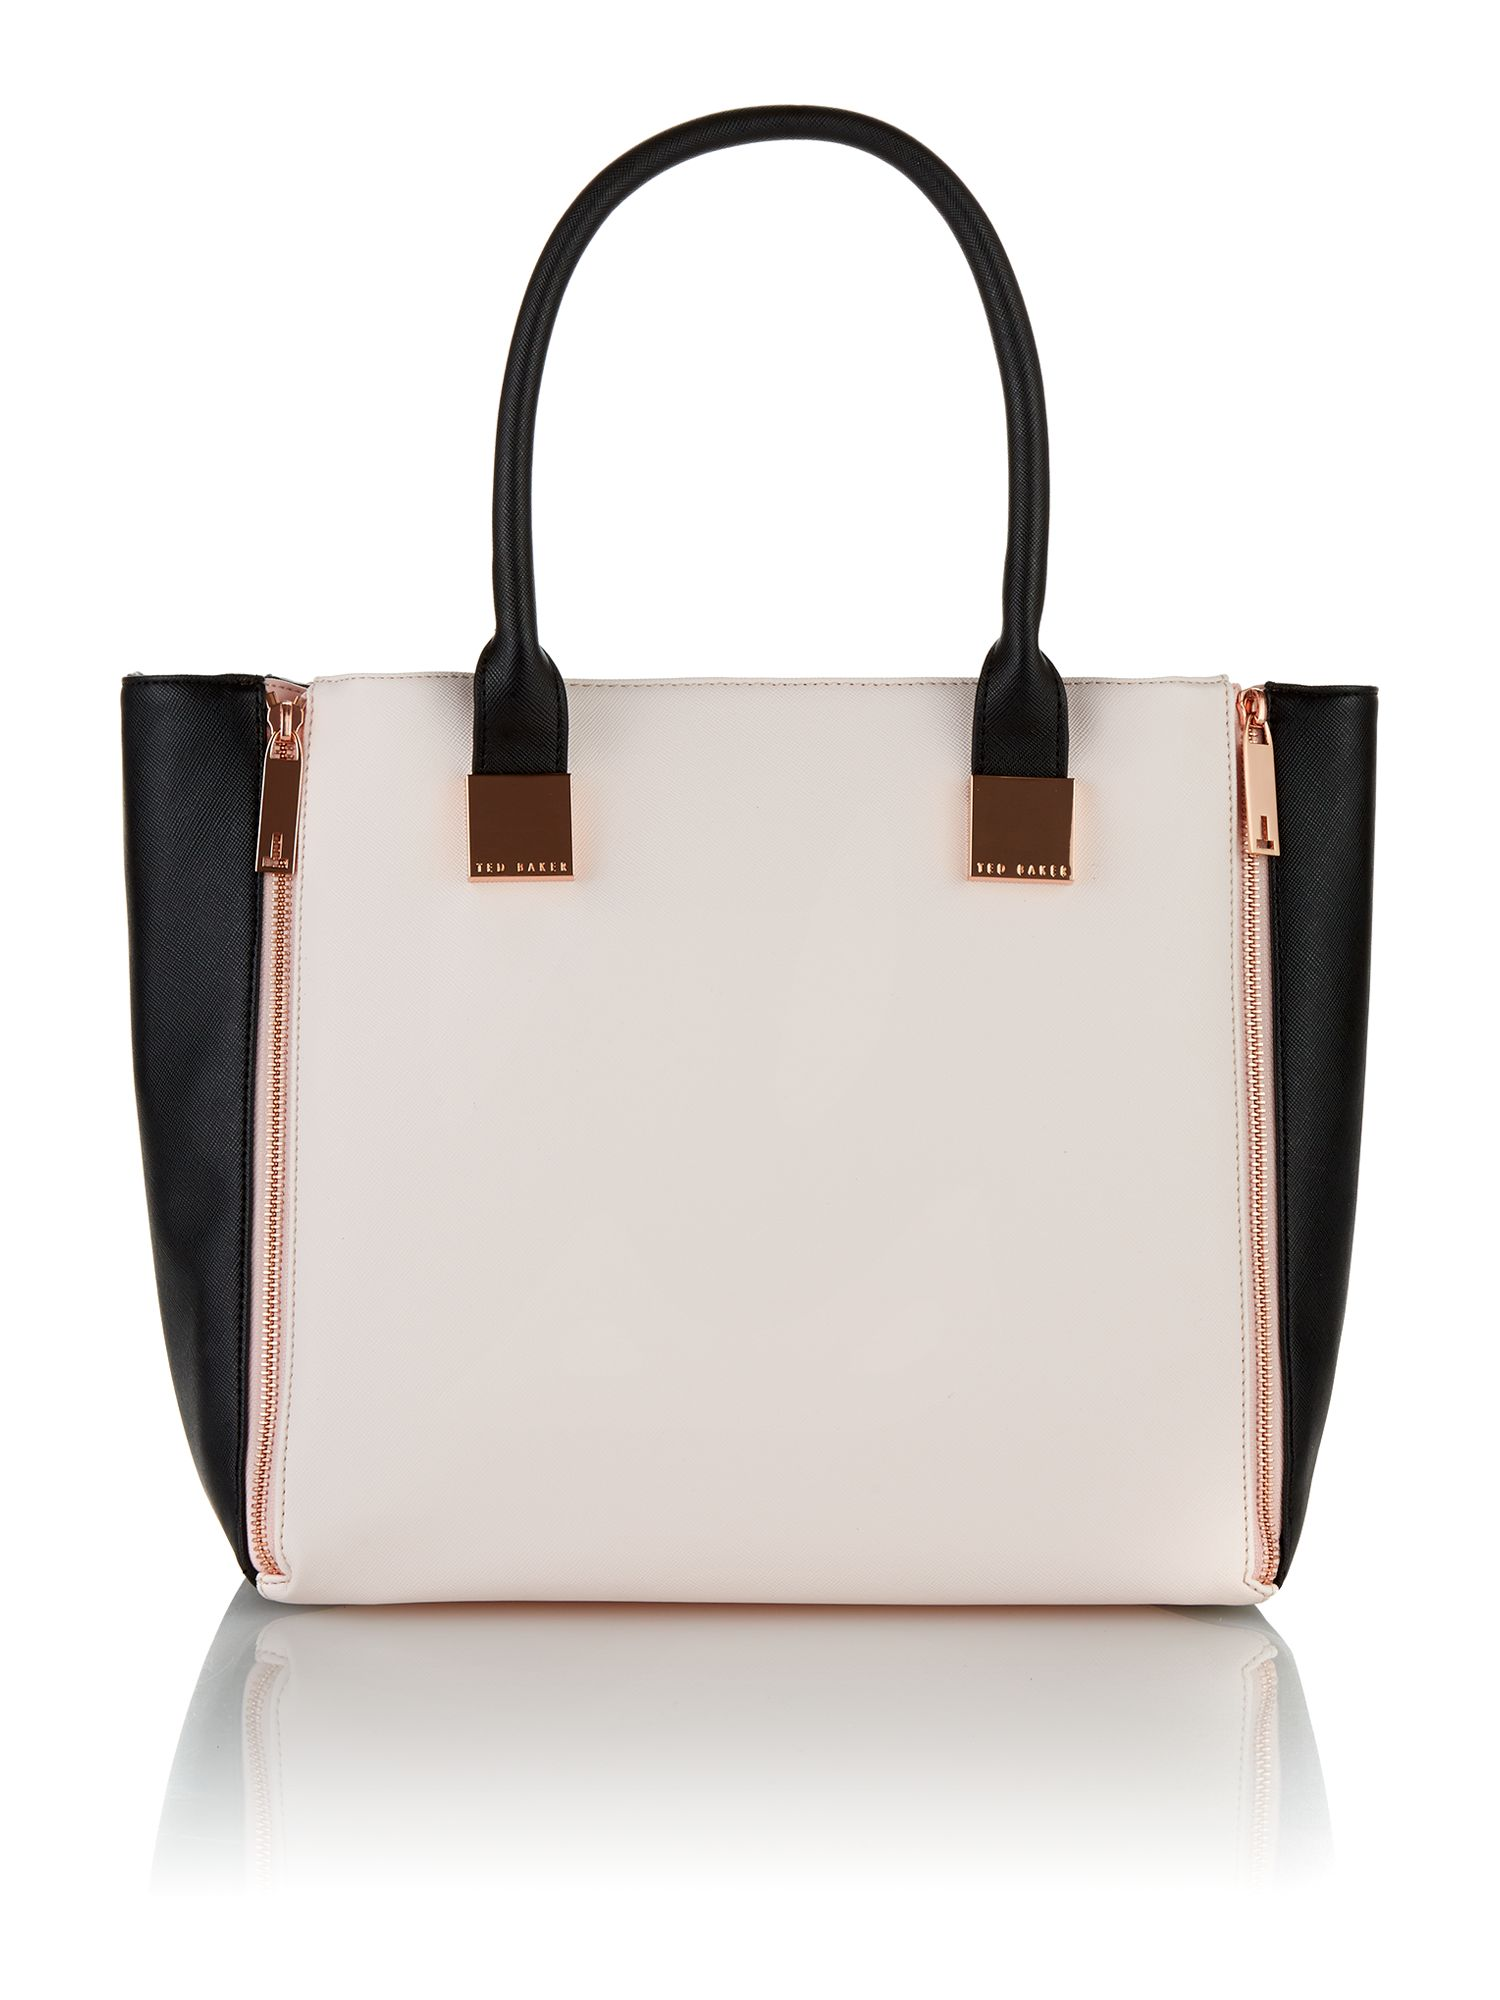 Small black and cream tote bag